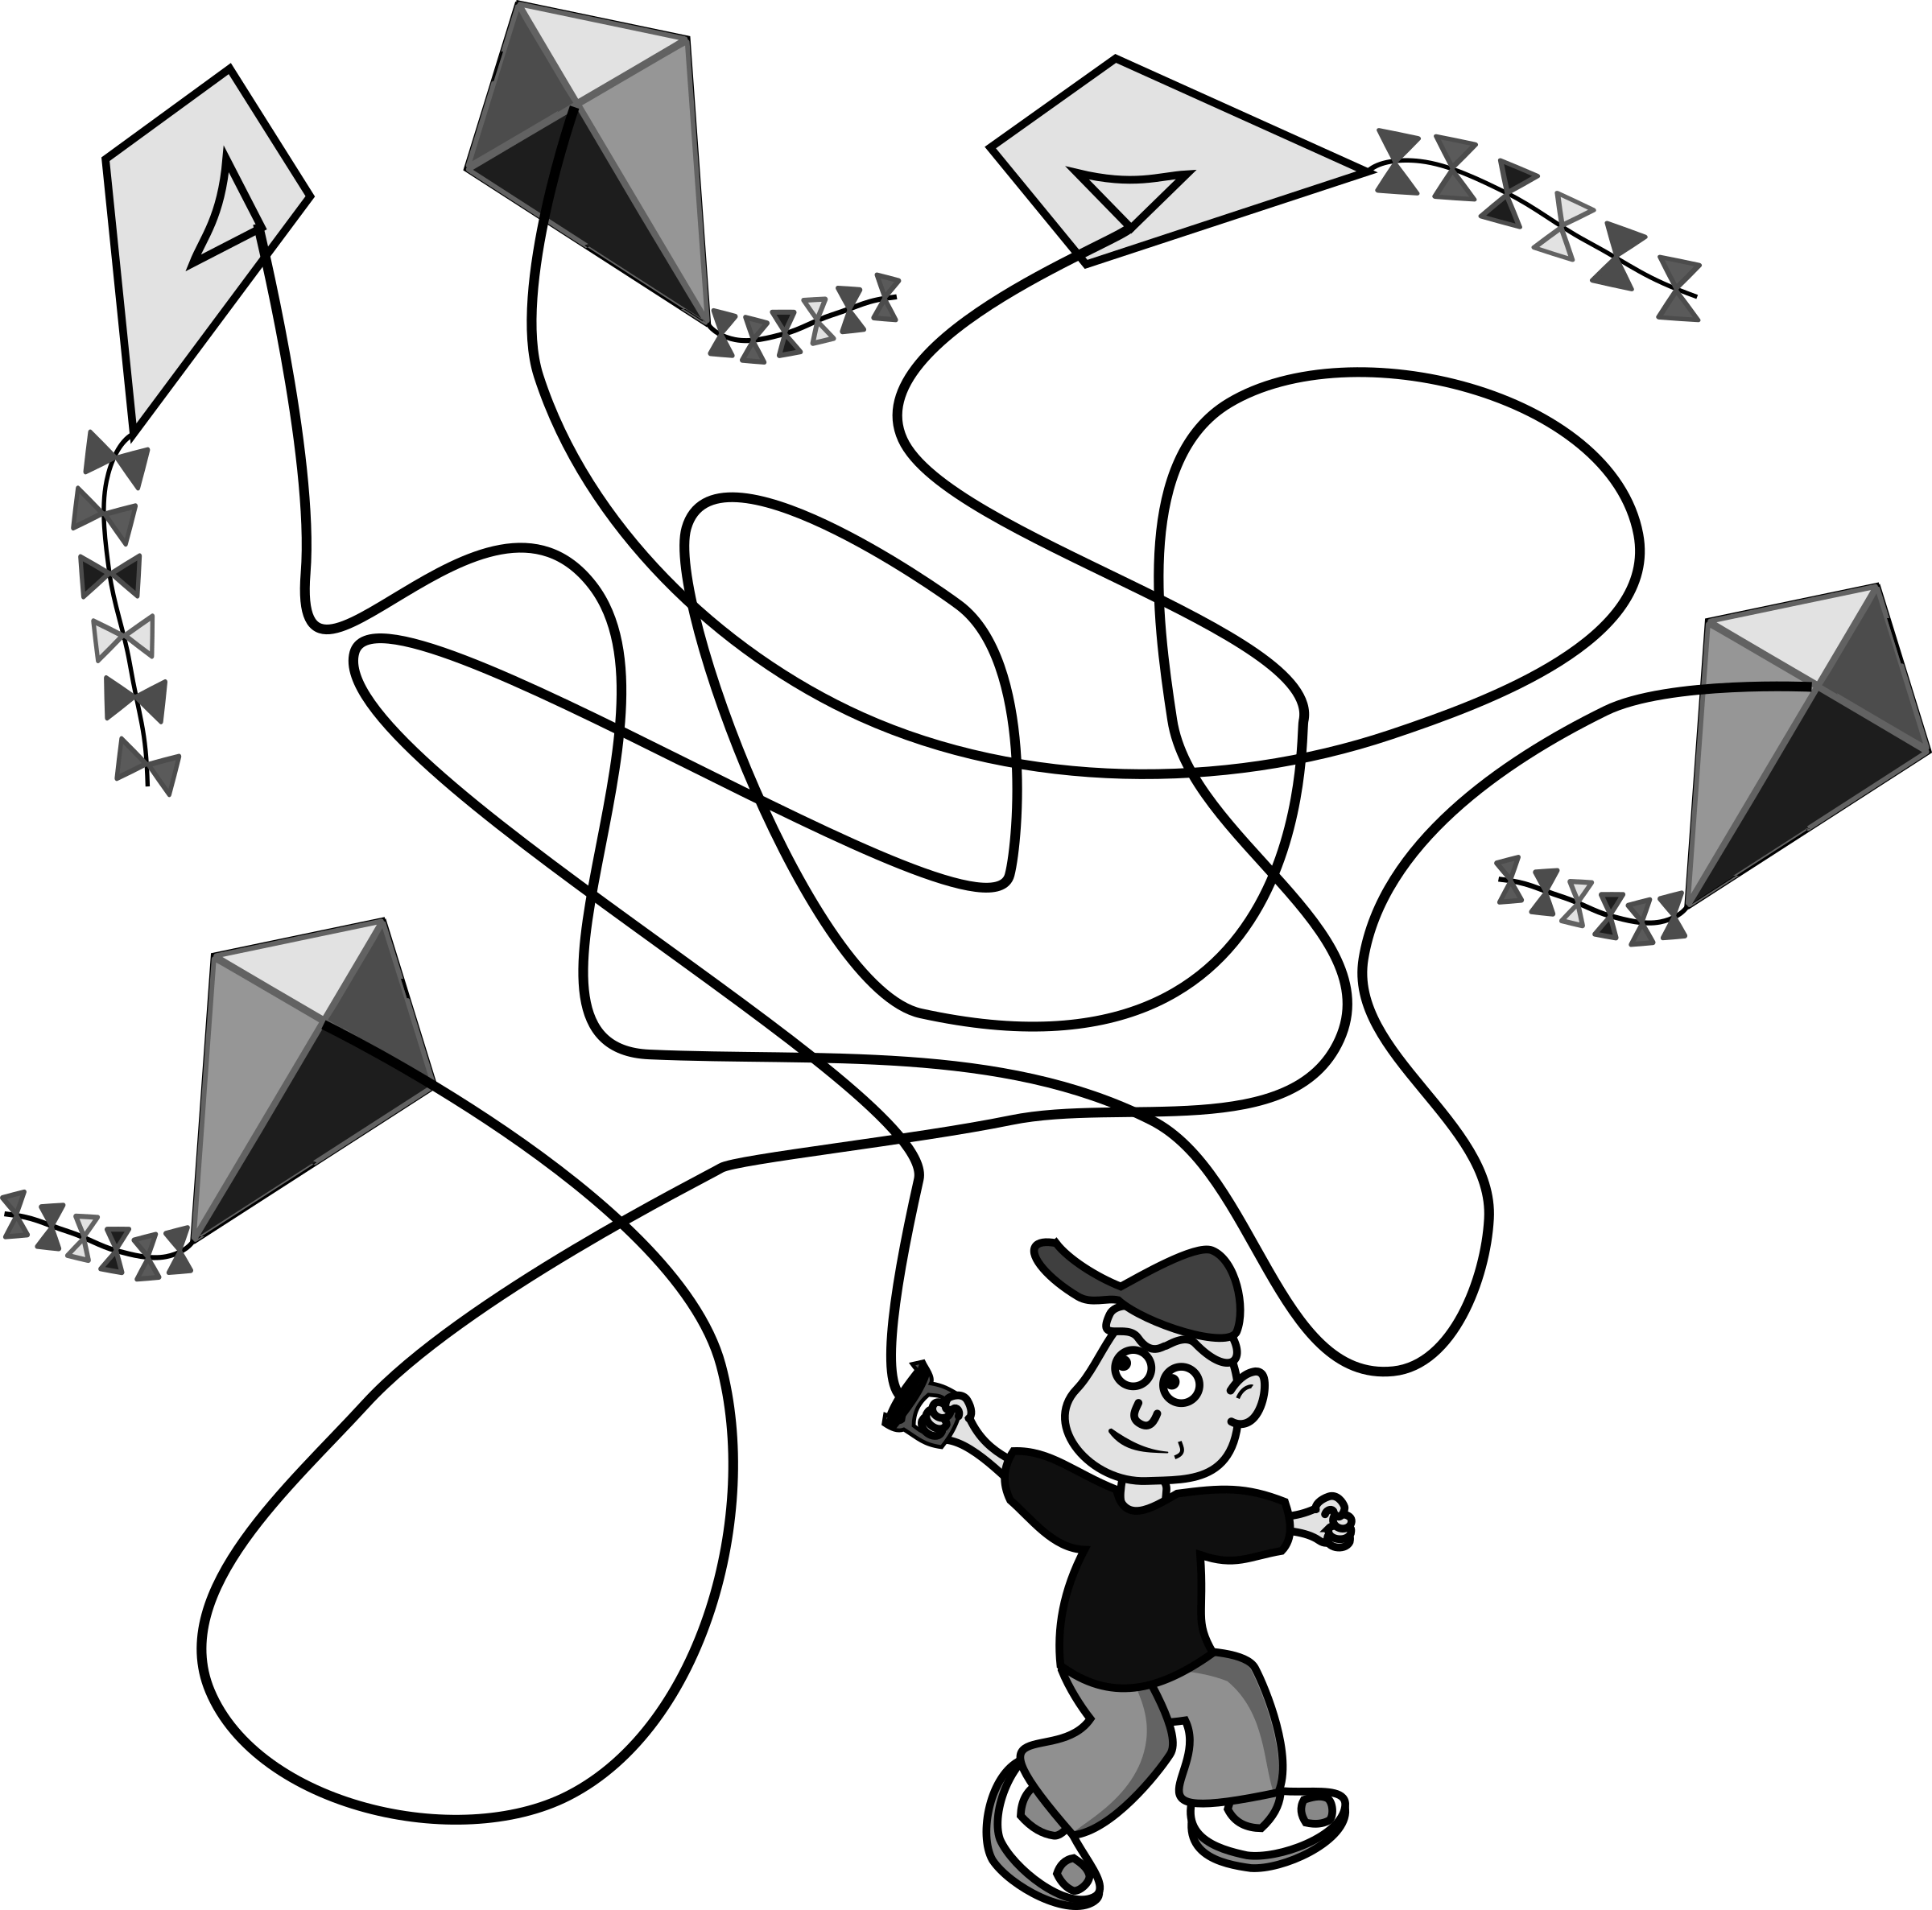 Kite Clipart Draw Kite Draw Transparent Free For Download